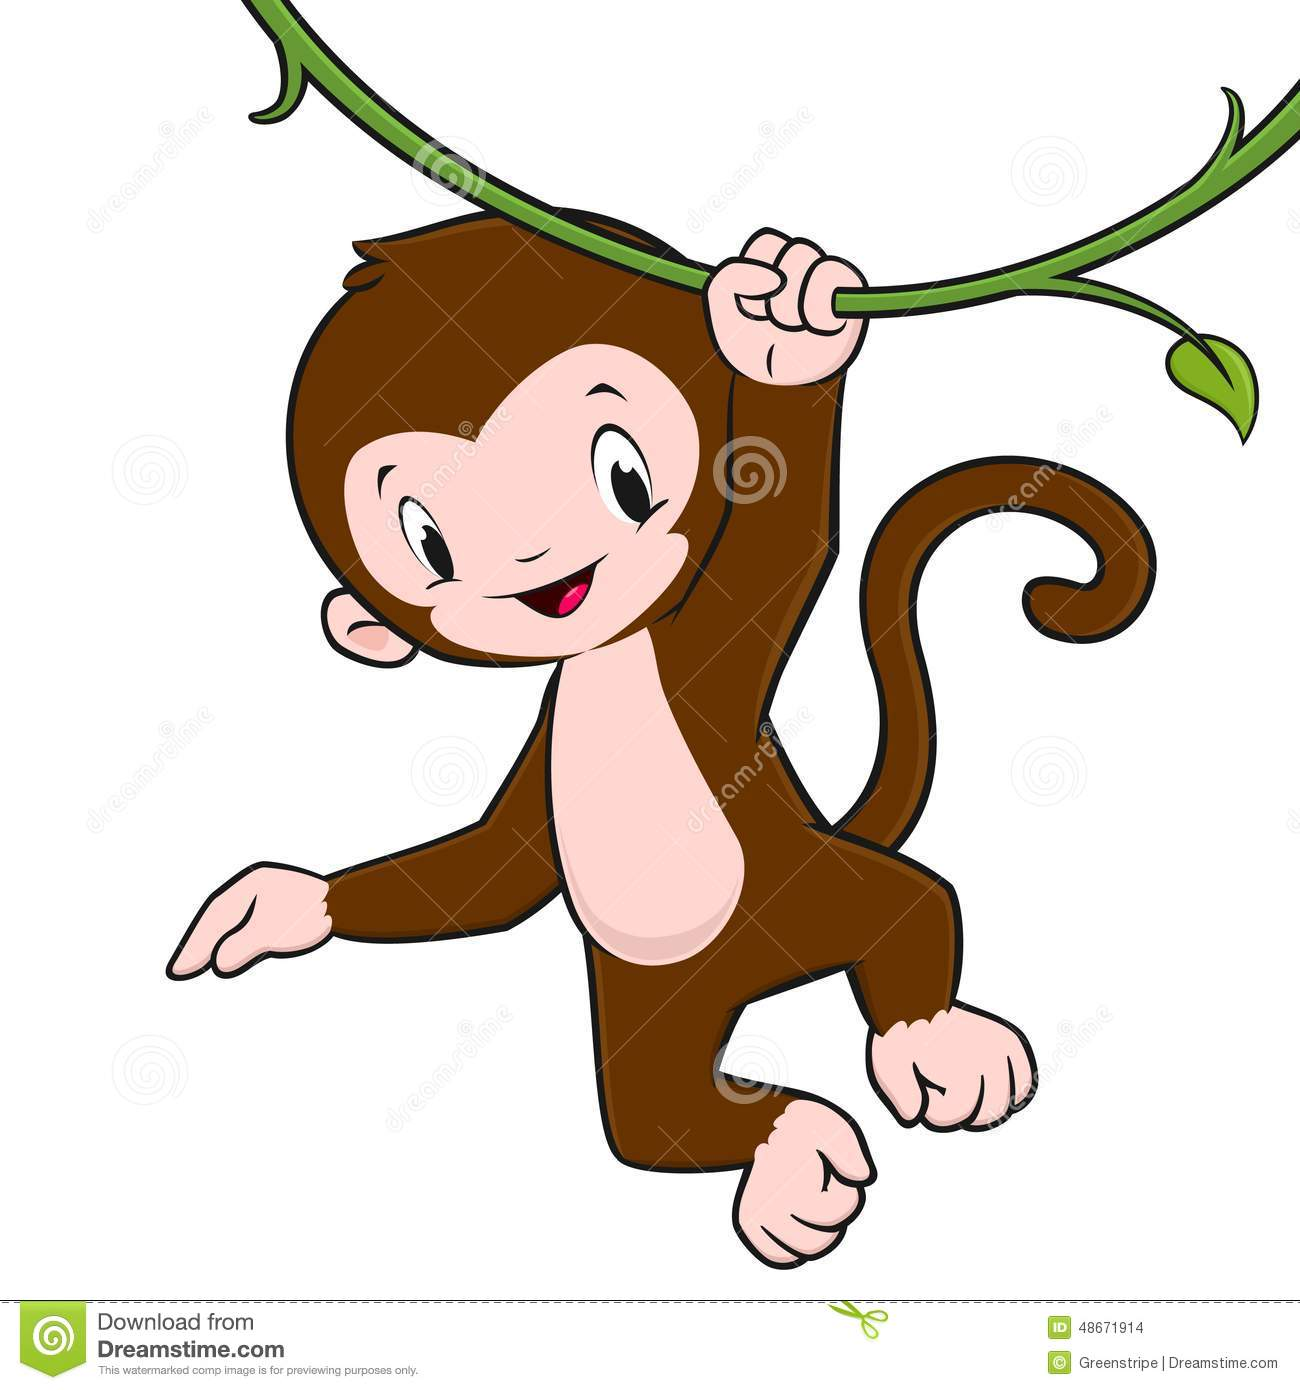 Cartoon baby monkey hanging from a vine for design element.